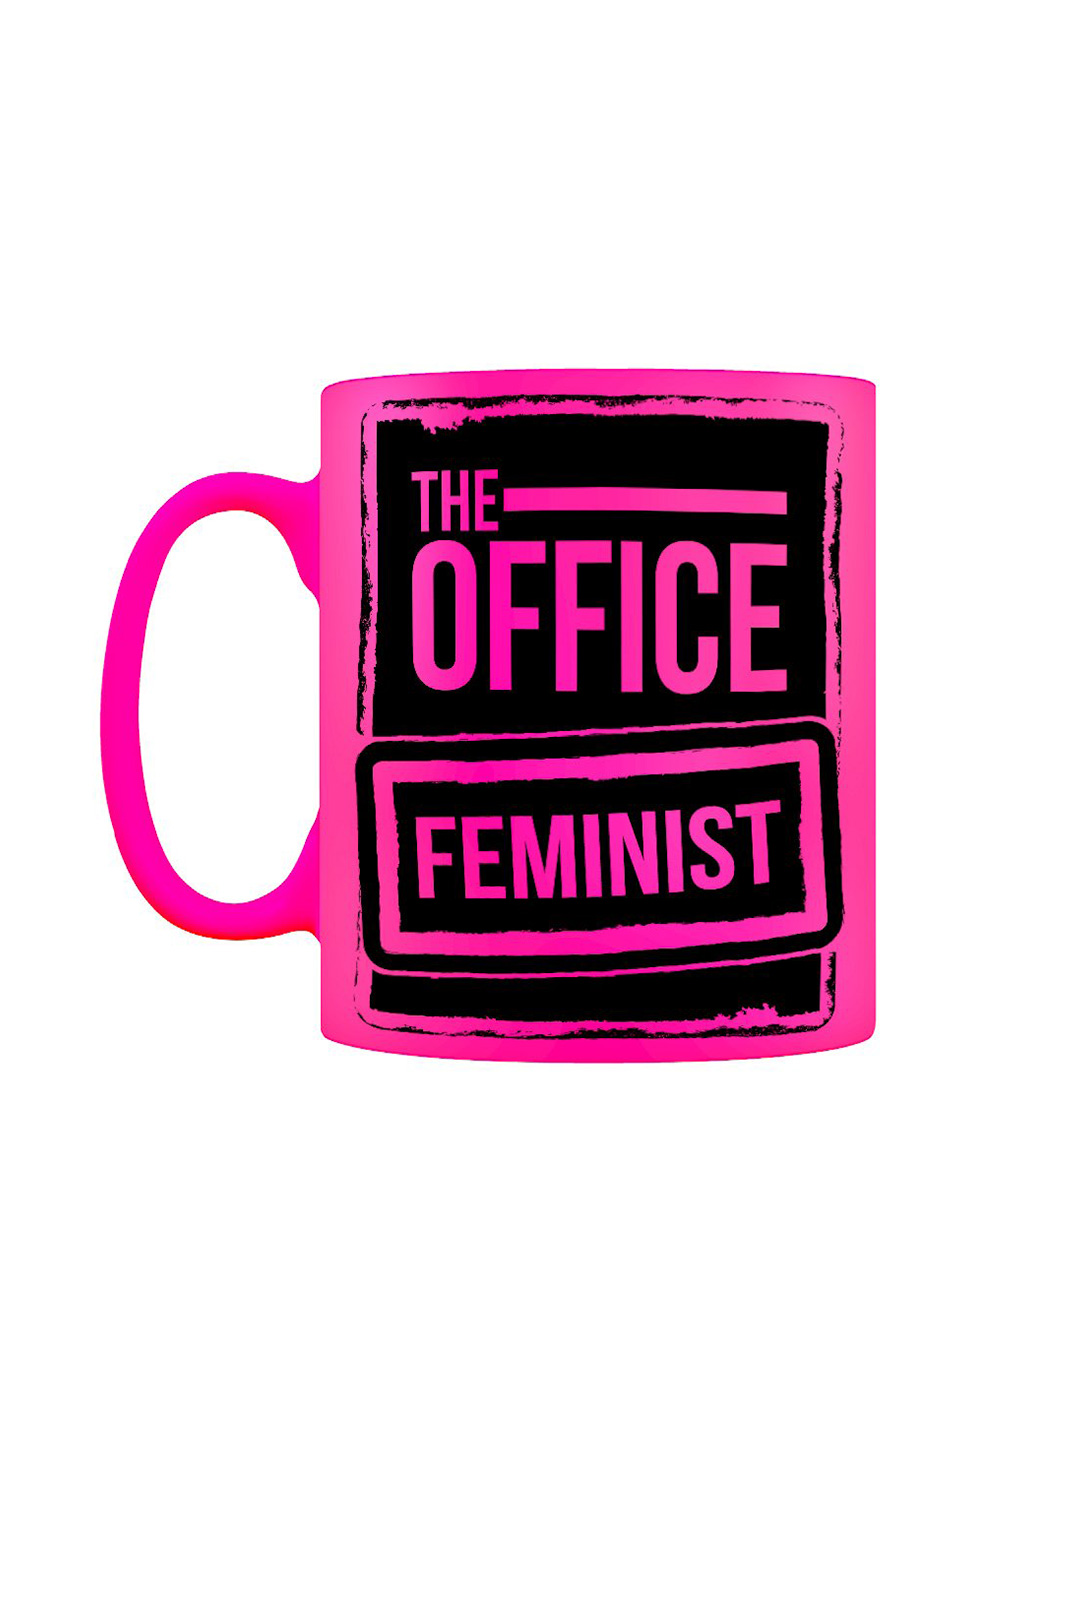 The Office Feminist Mug Pink